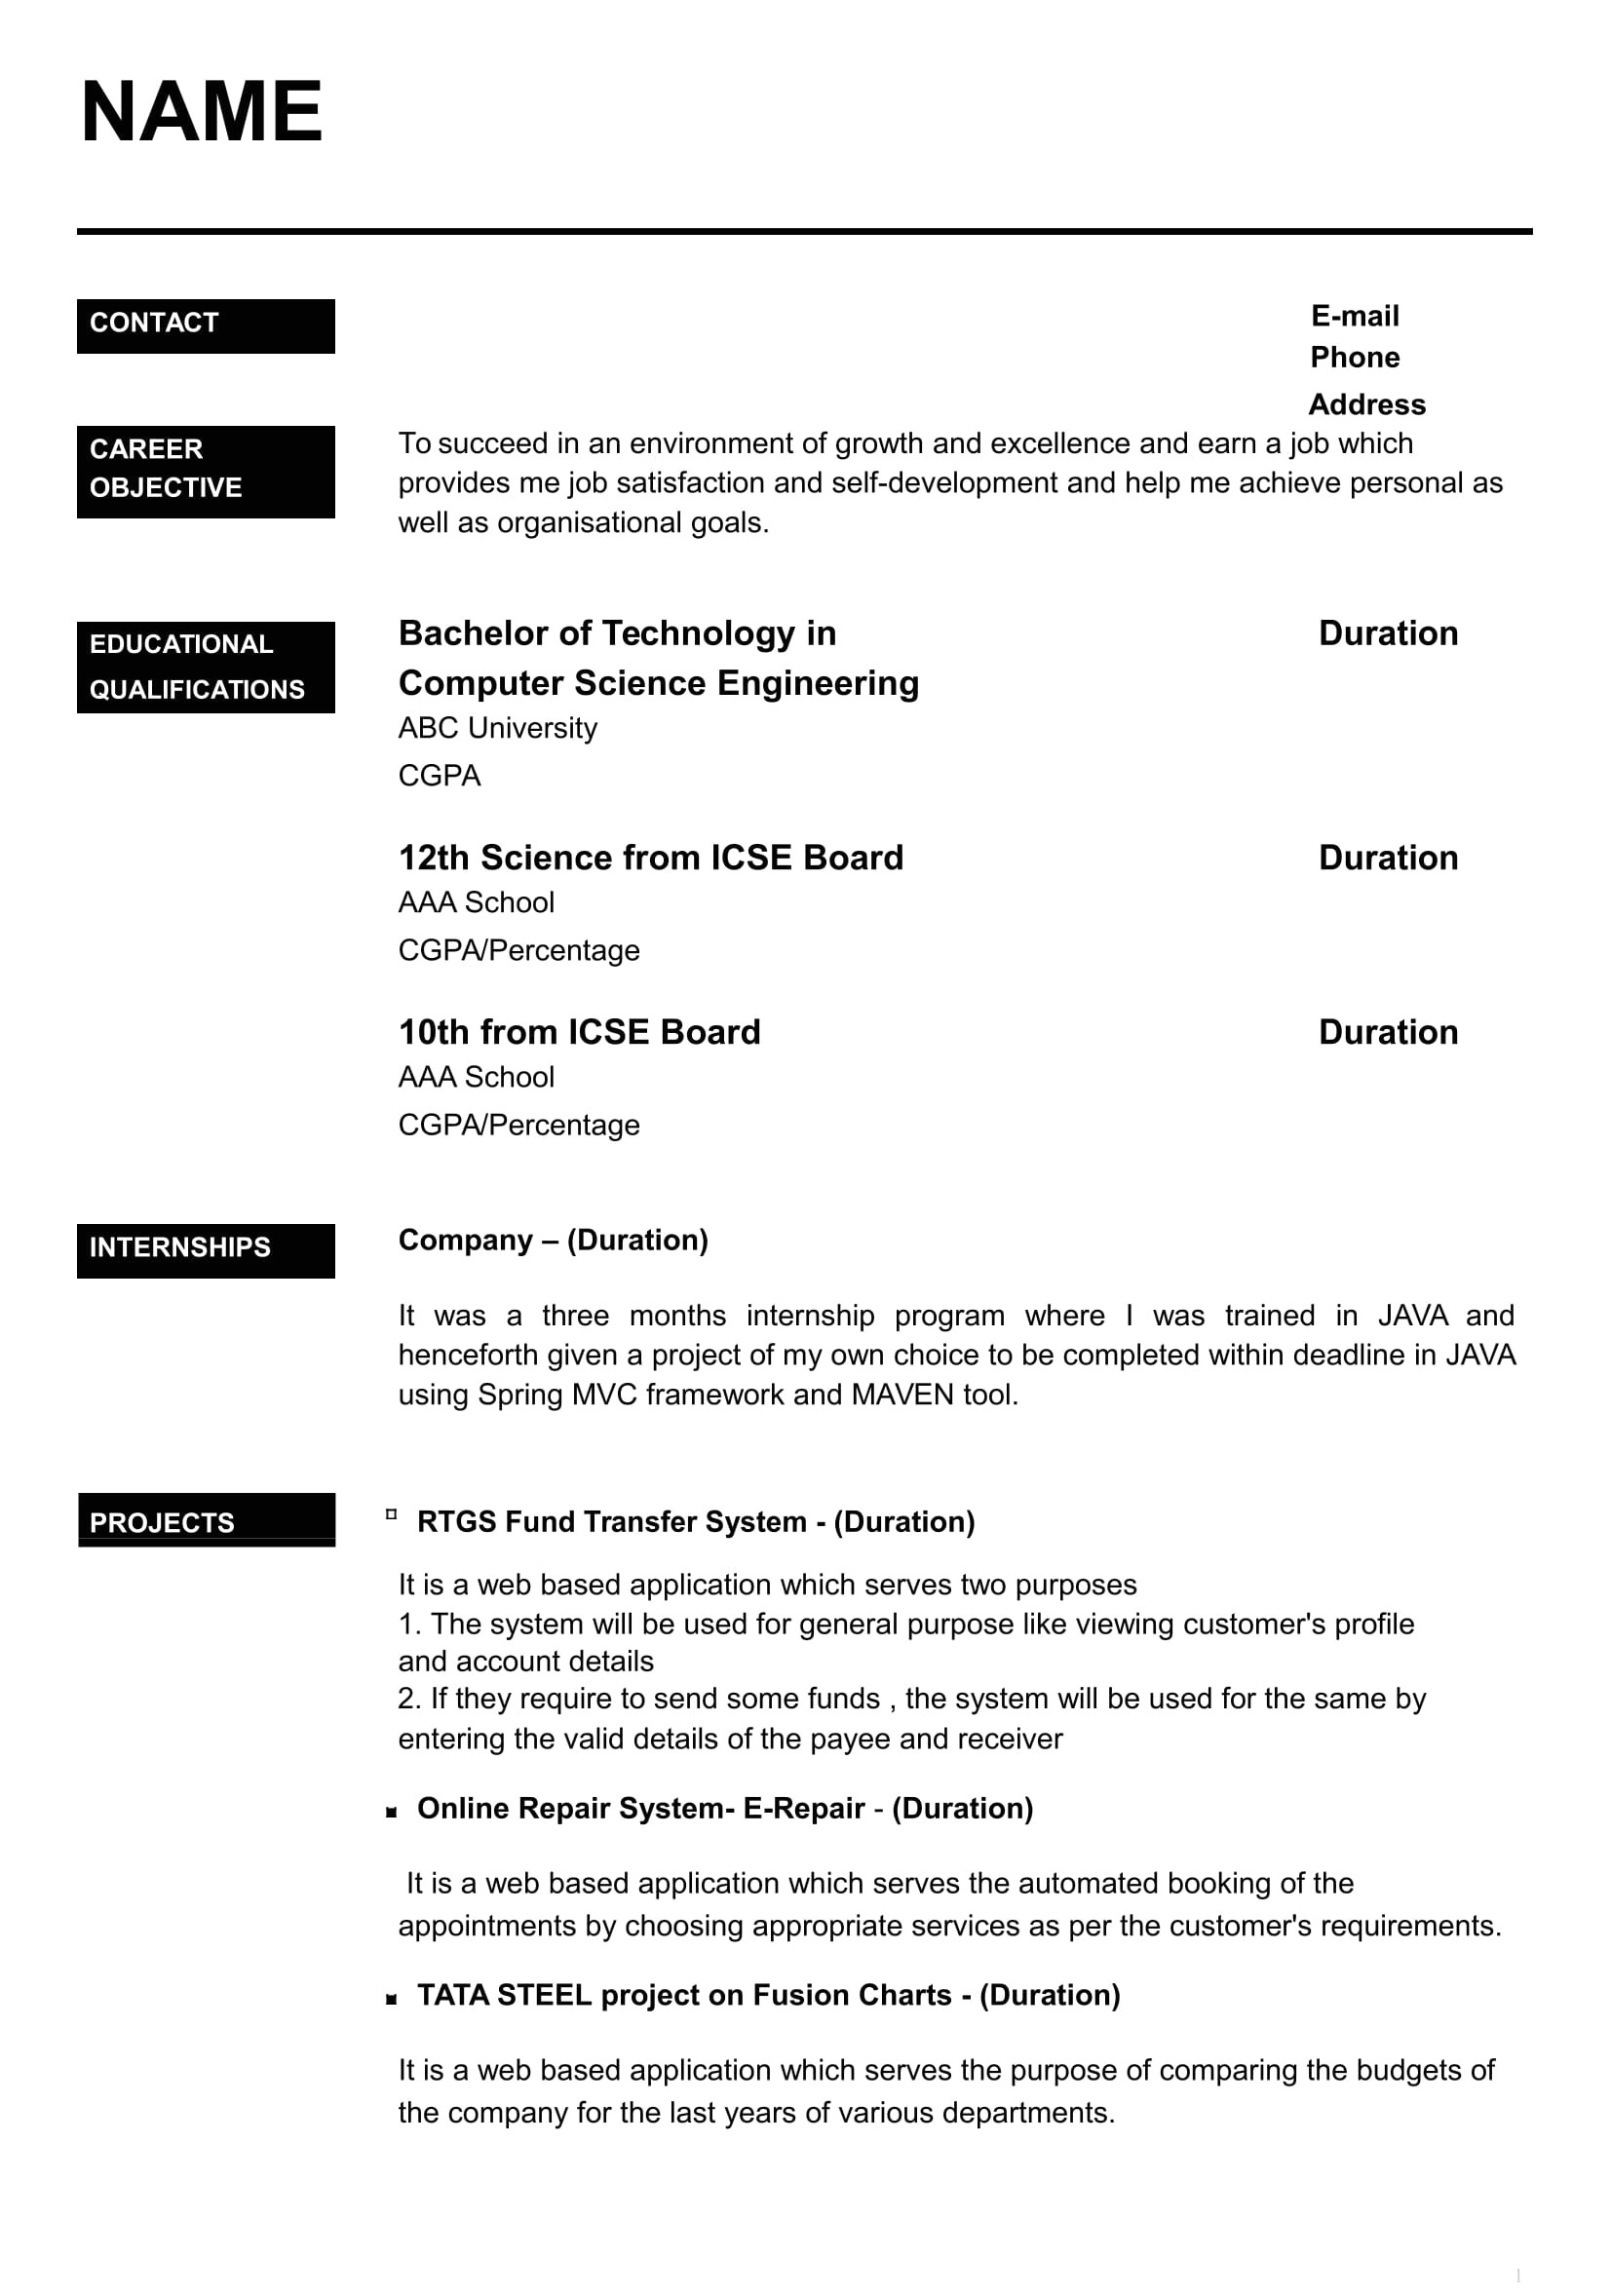 Resume format for Job Fresher Word 32 Resume Templates for Freshers Download Free Word format